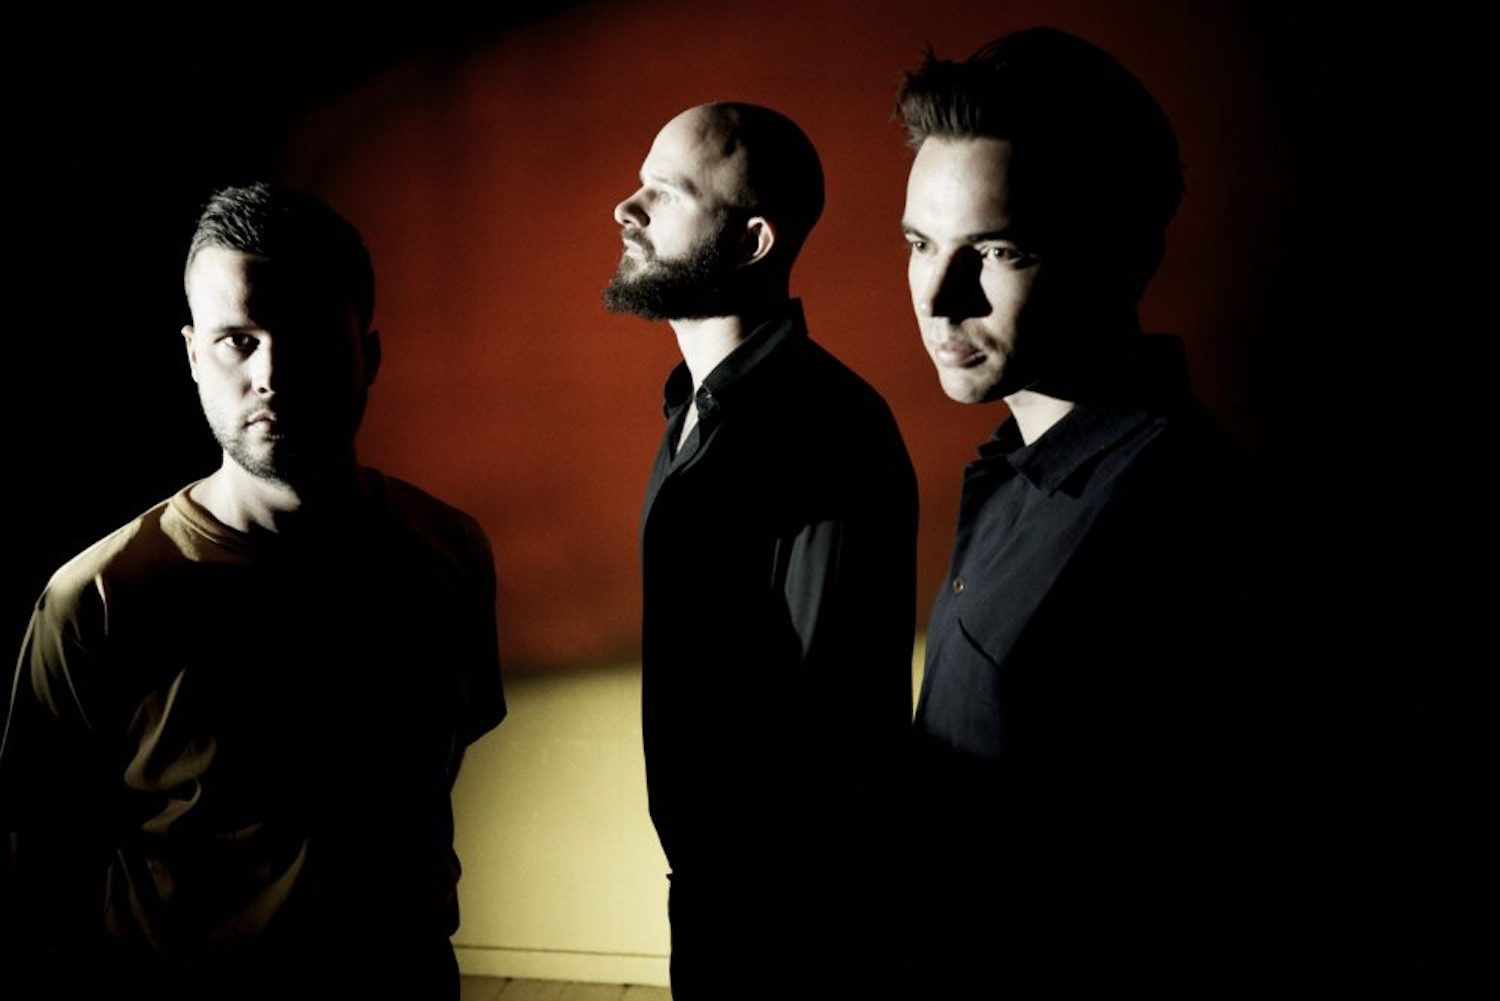 White Lies will release vinyl edition of To Lose My Life